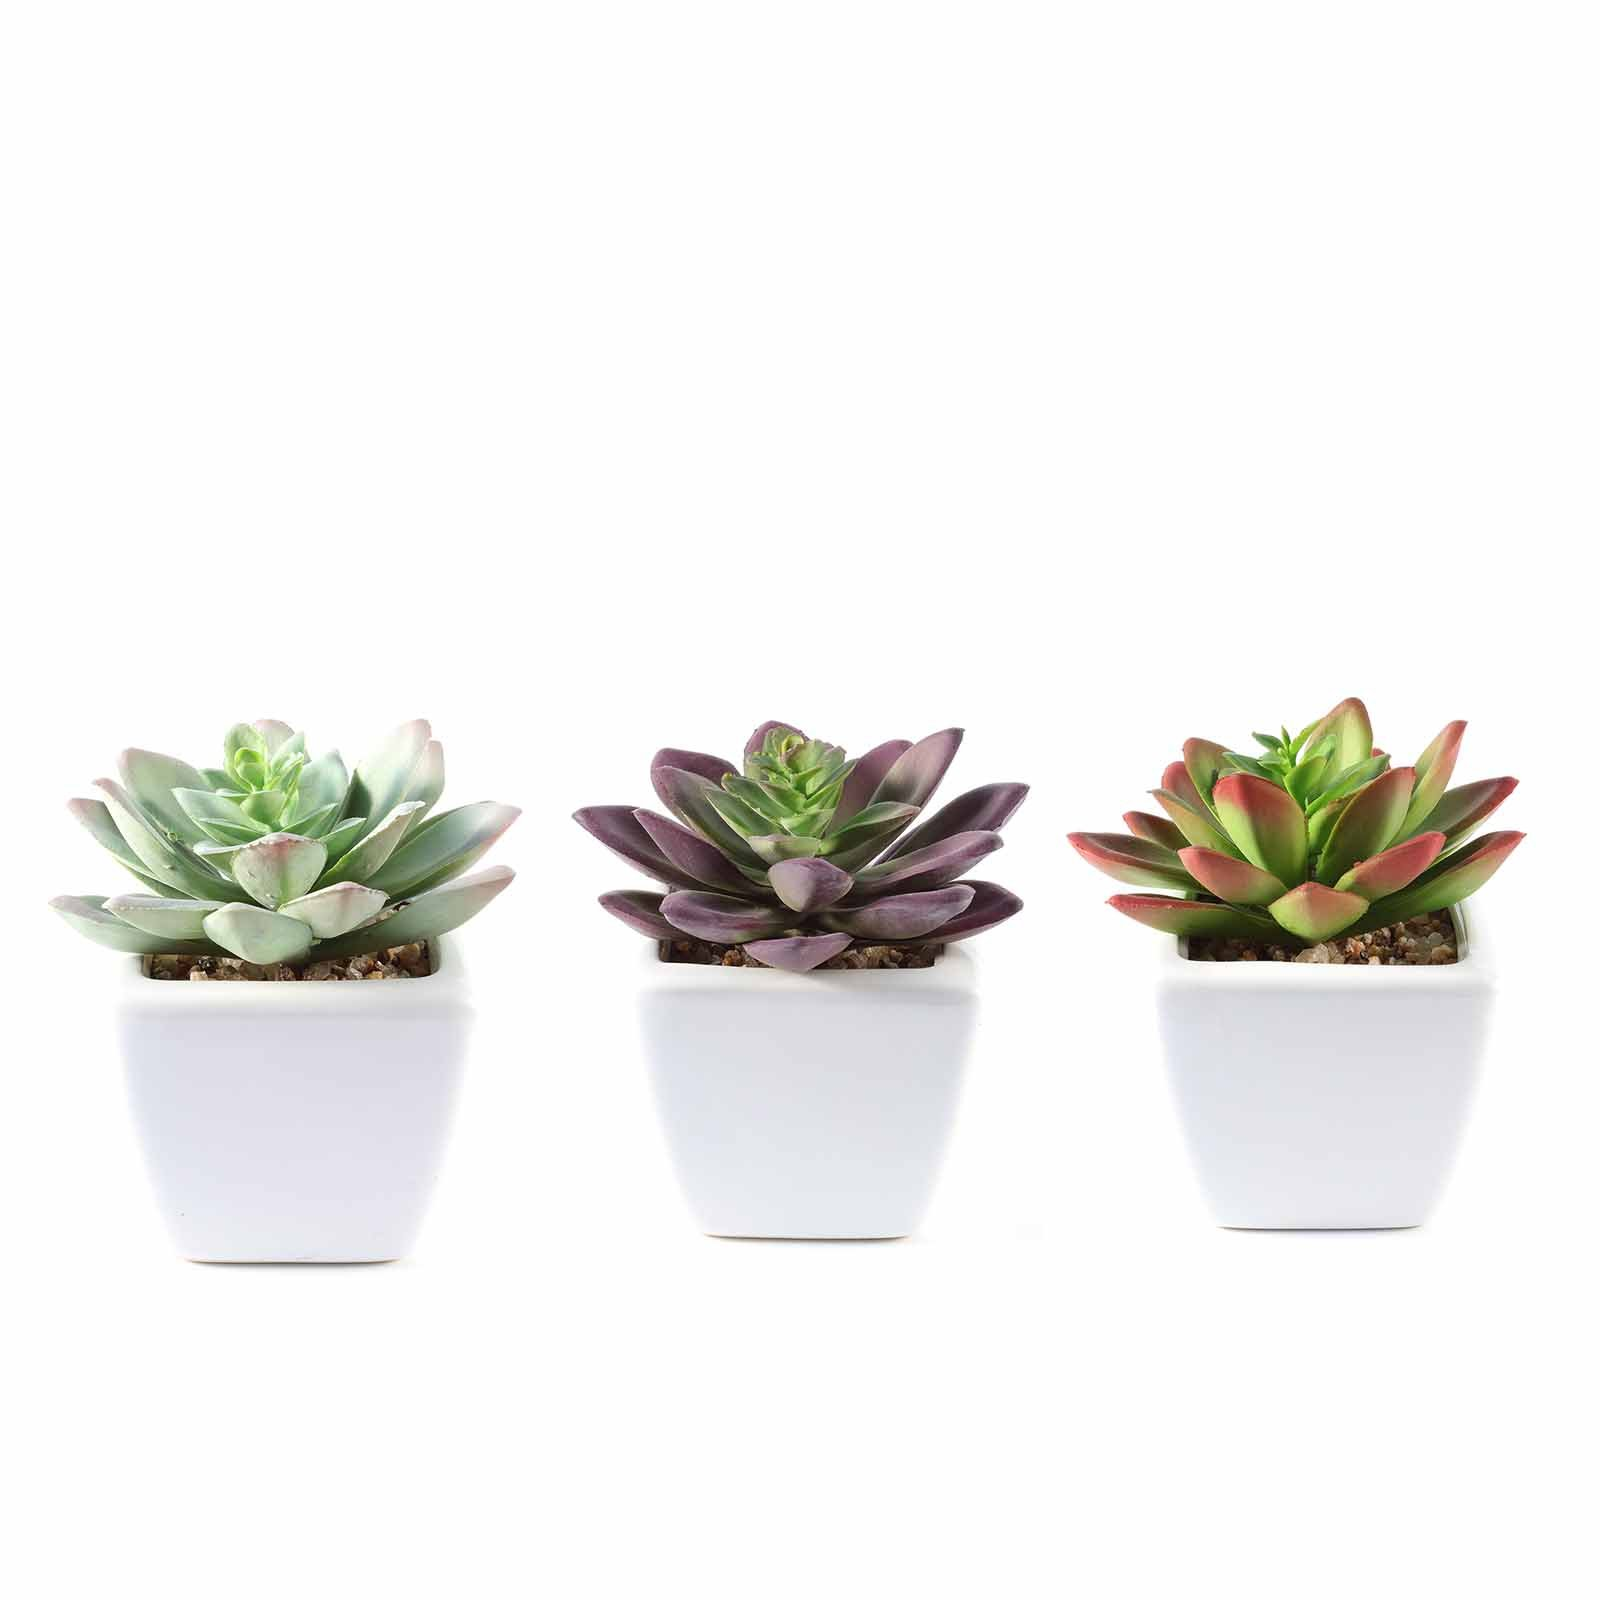 FEILANDUO Set of 4 Mini Artificial Plants Potted Fake Bonsai Ball Plant Faux Green Grass in White Plastic Pots for Outdoor and Indoor Home Desk Decor 4